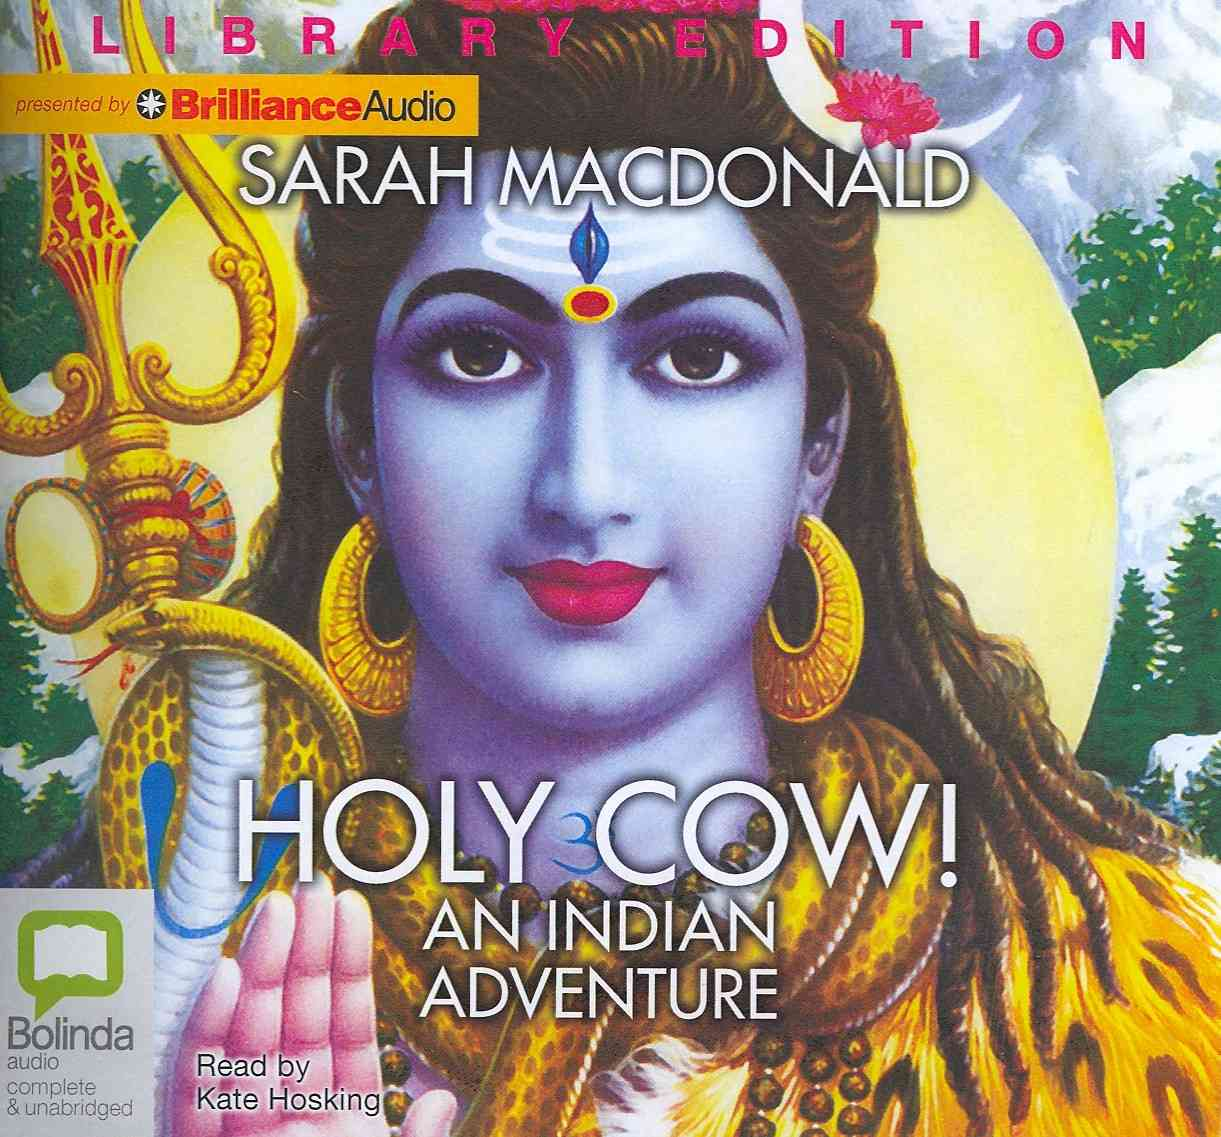 Holy Cow!: An Indian Adventure, Library Edition (CD-Audio)